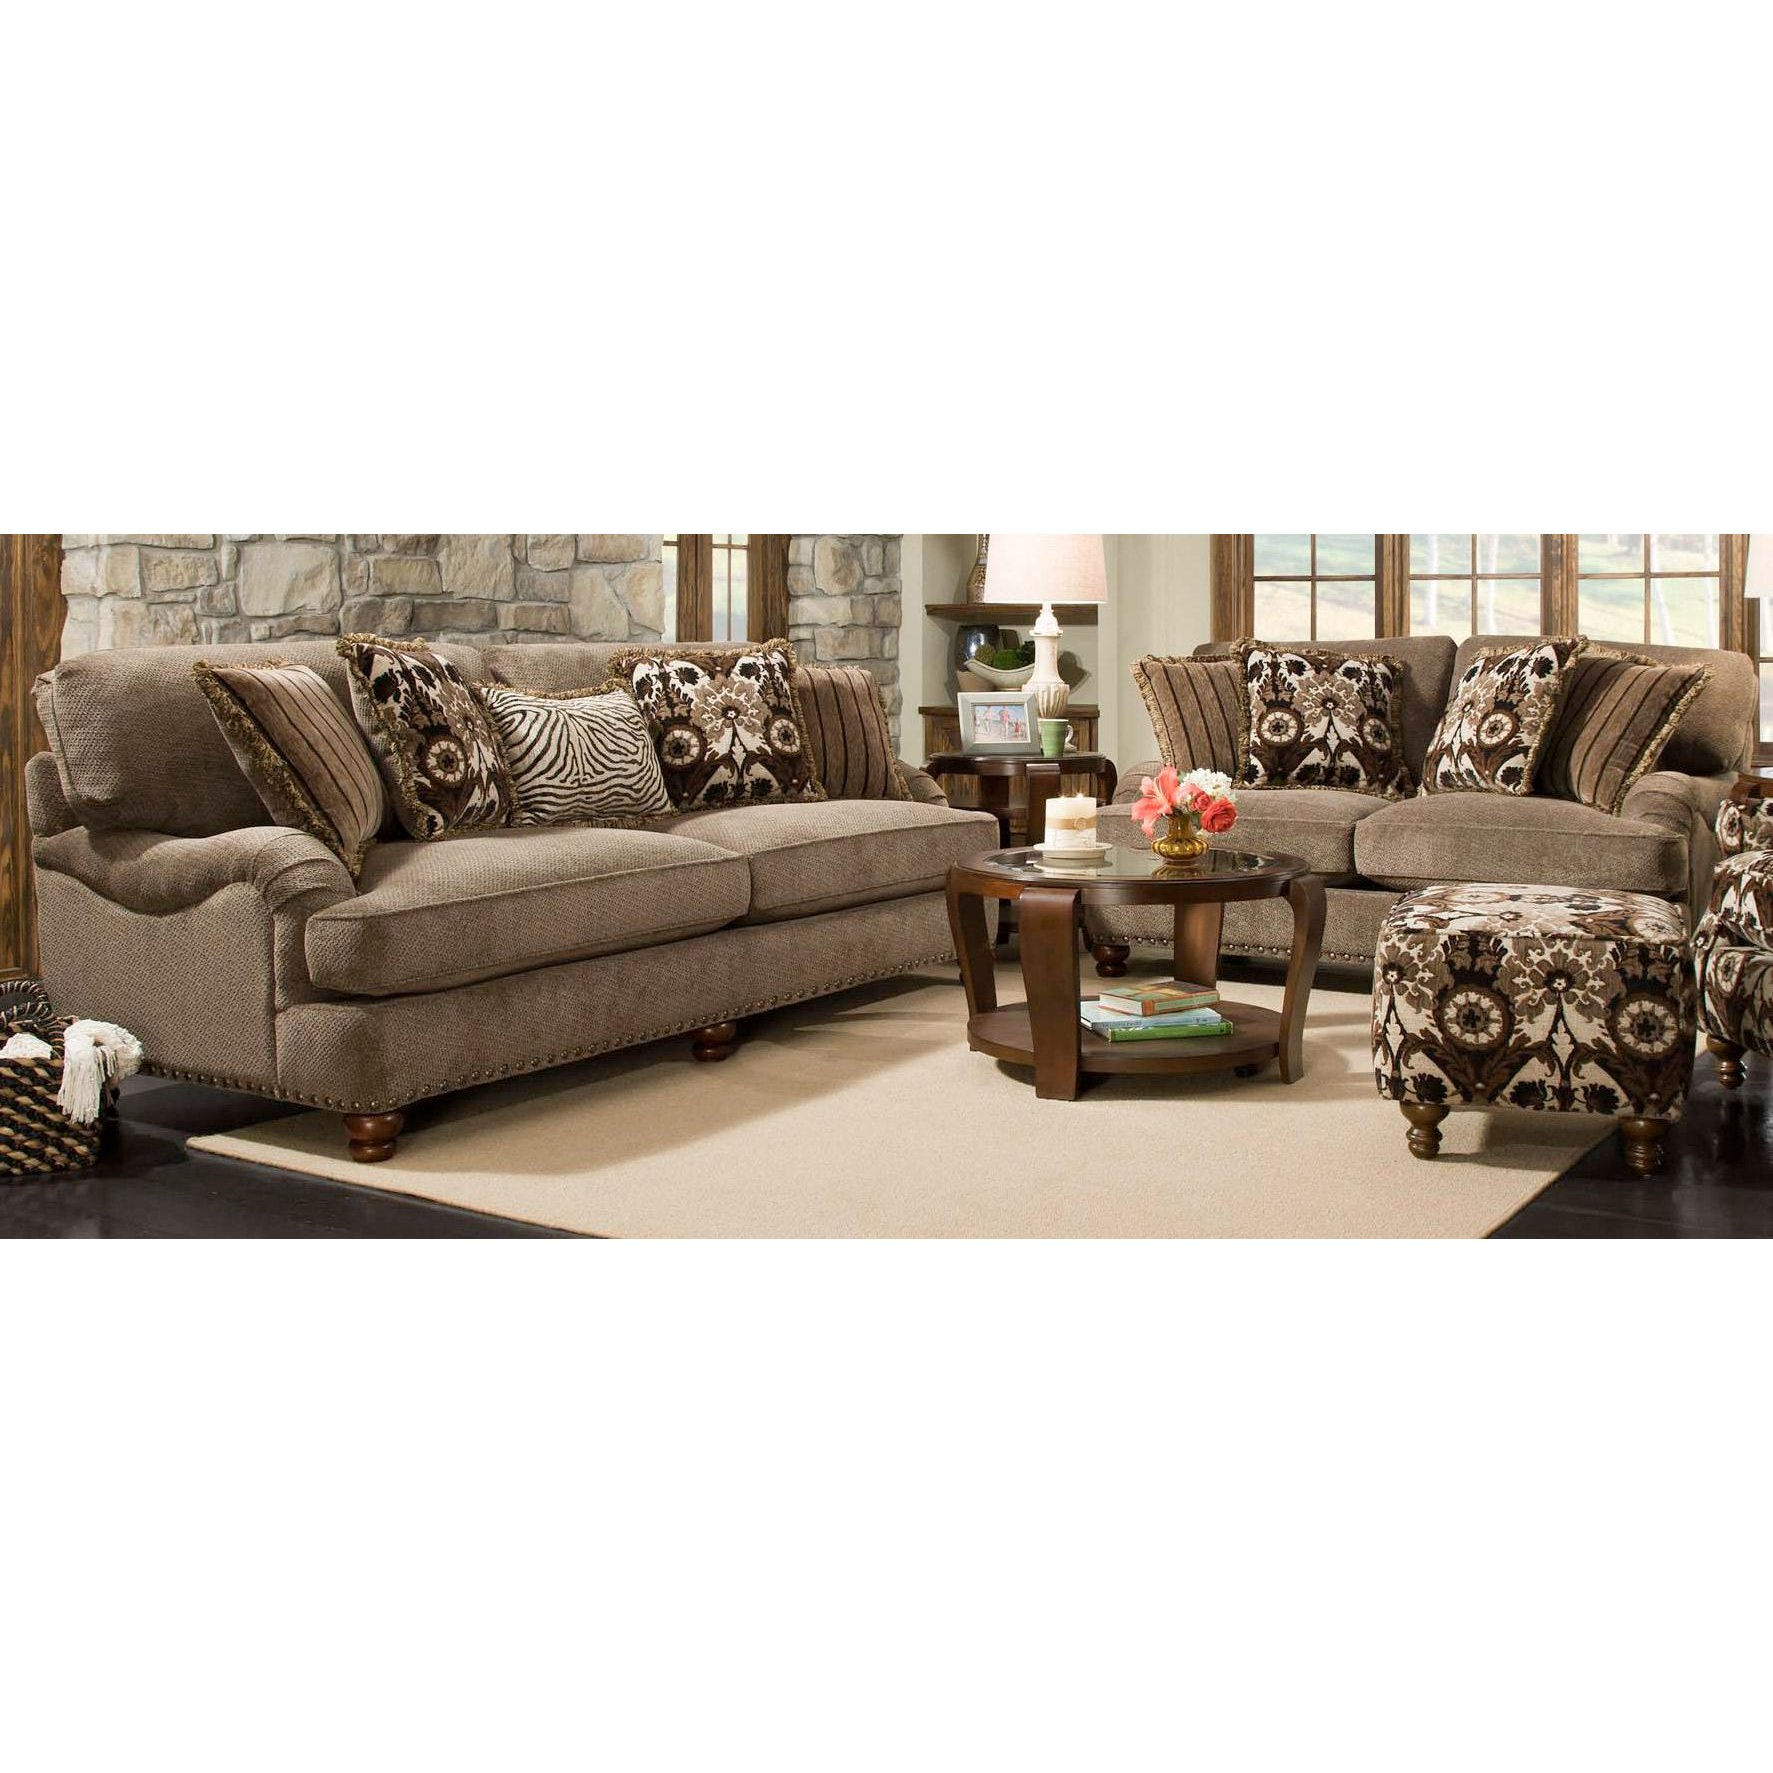 sitting living brown chairs sofa furniture room set leather amazing